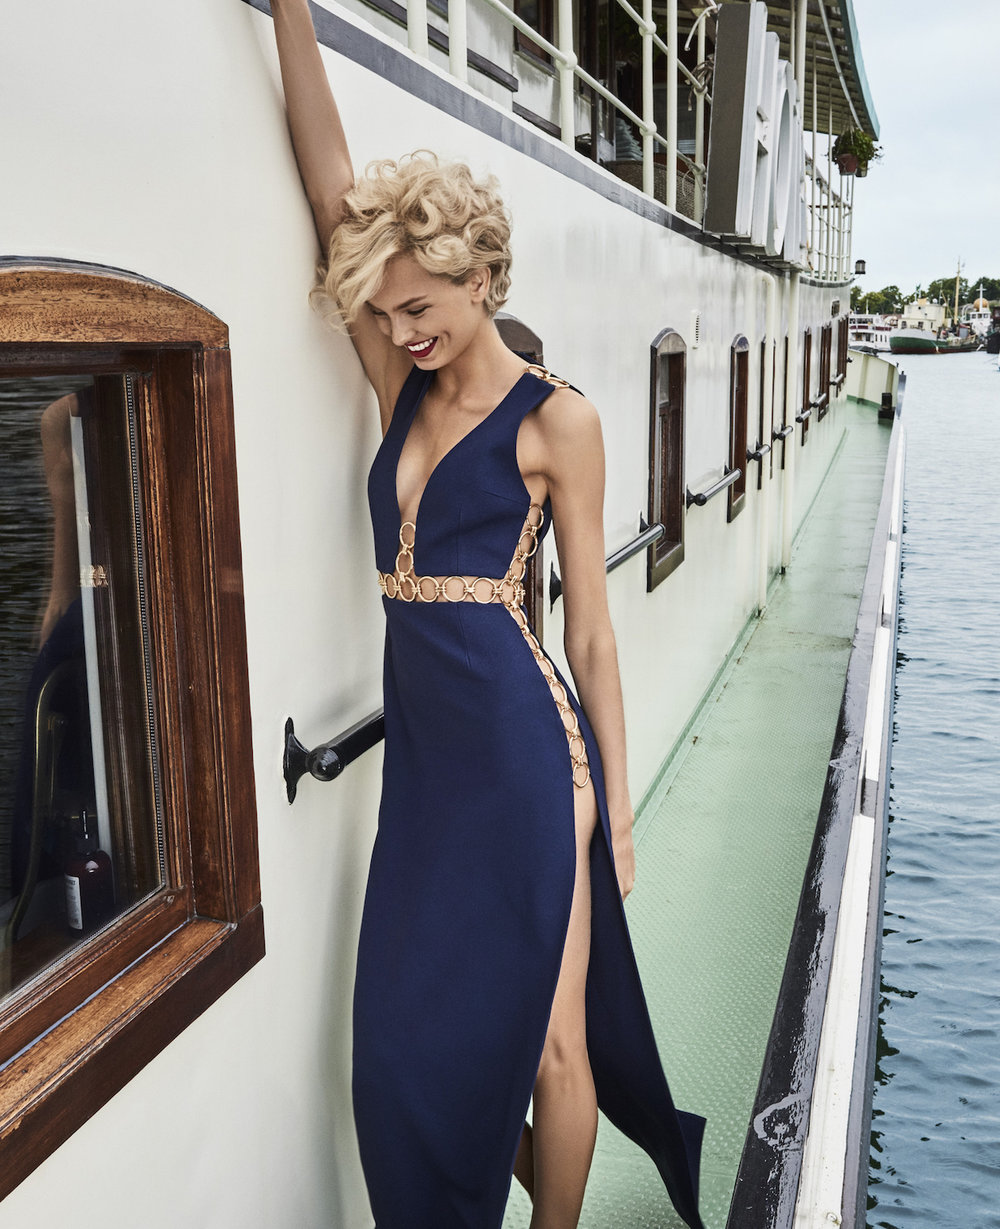 My Weekend Cruise_Vogue Japan_December 2016_Mariano Vivanco-4.jpeg